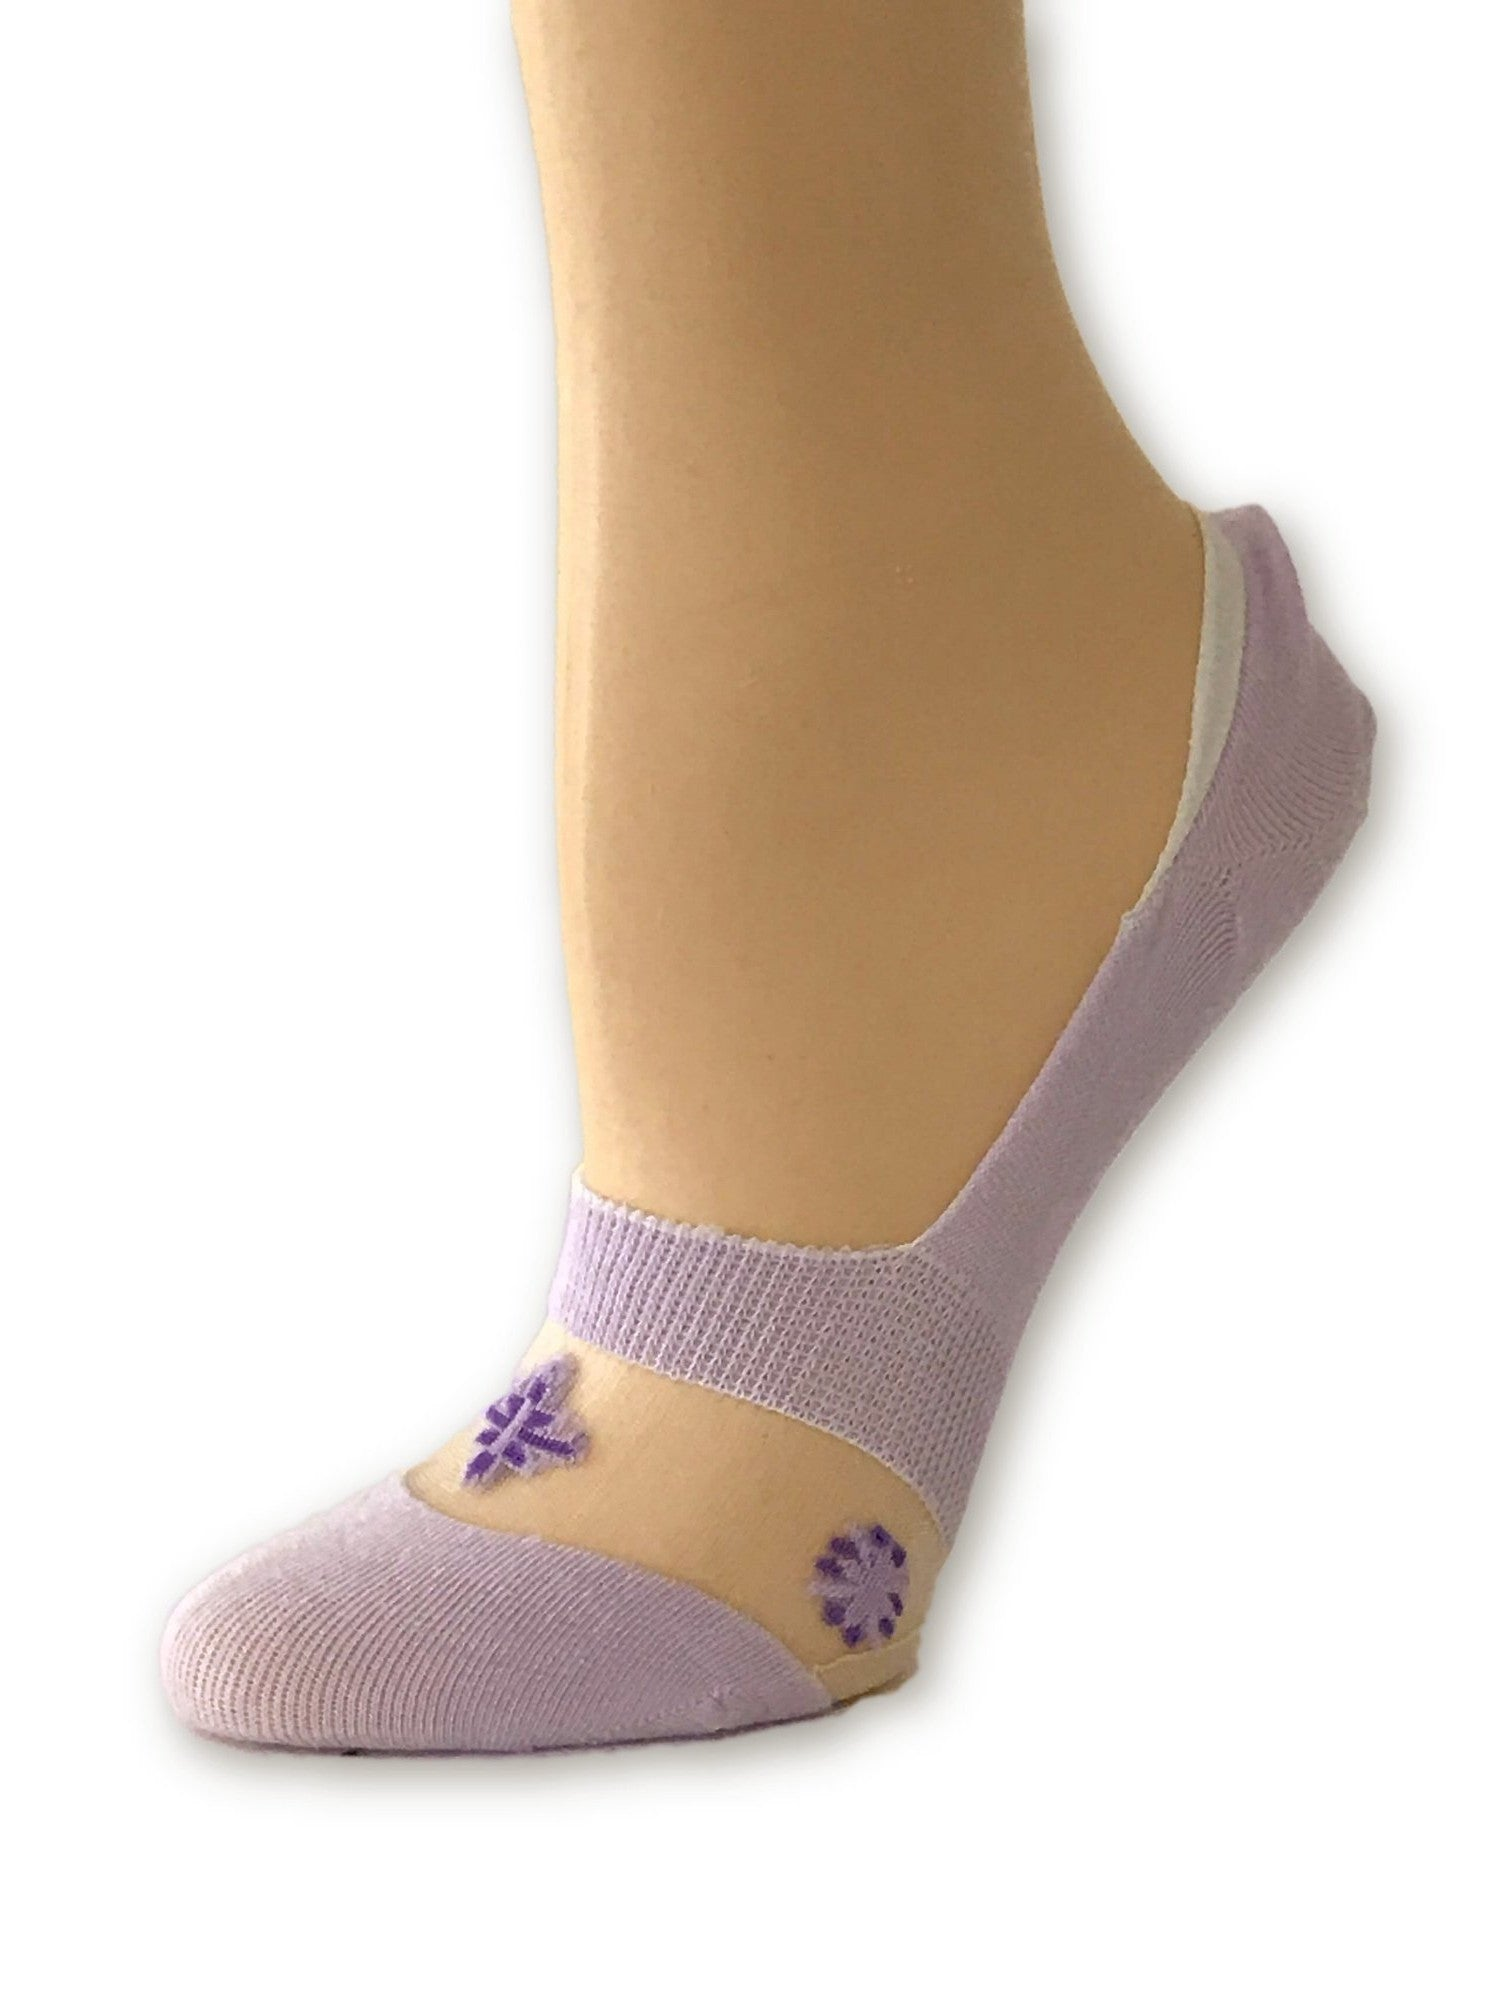 One-Stripped Purple Ankle Sheer Socks- Global Trendz Fashion®